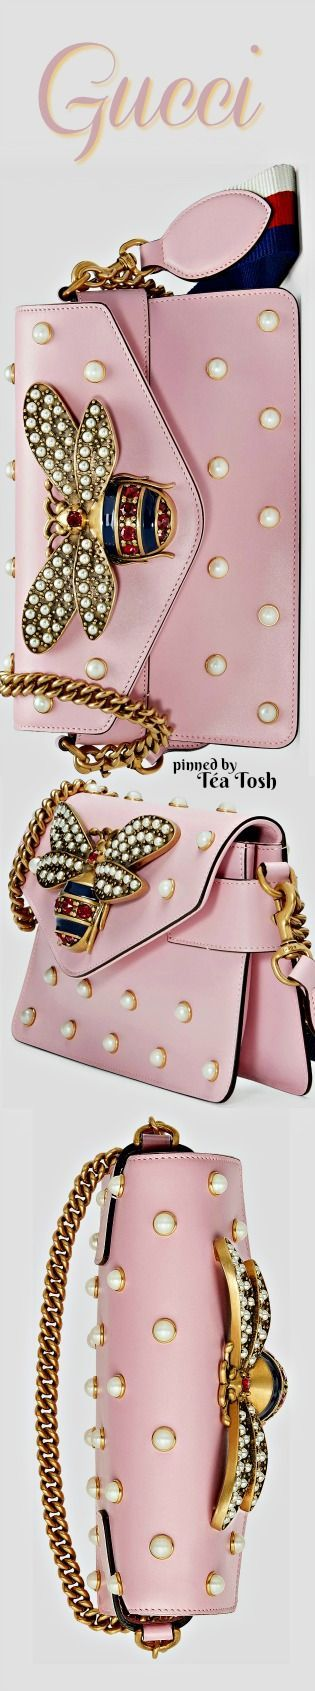 ❇Téa Tosh❇ — ❇Téa Tosh❇ Gucci, Broadway leather clutch         ...